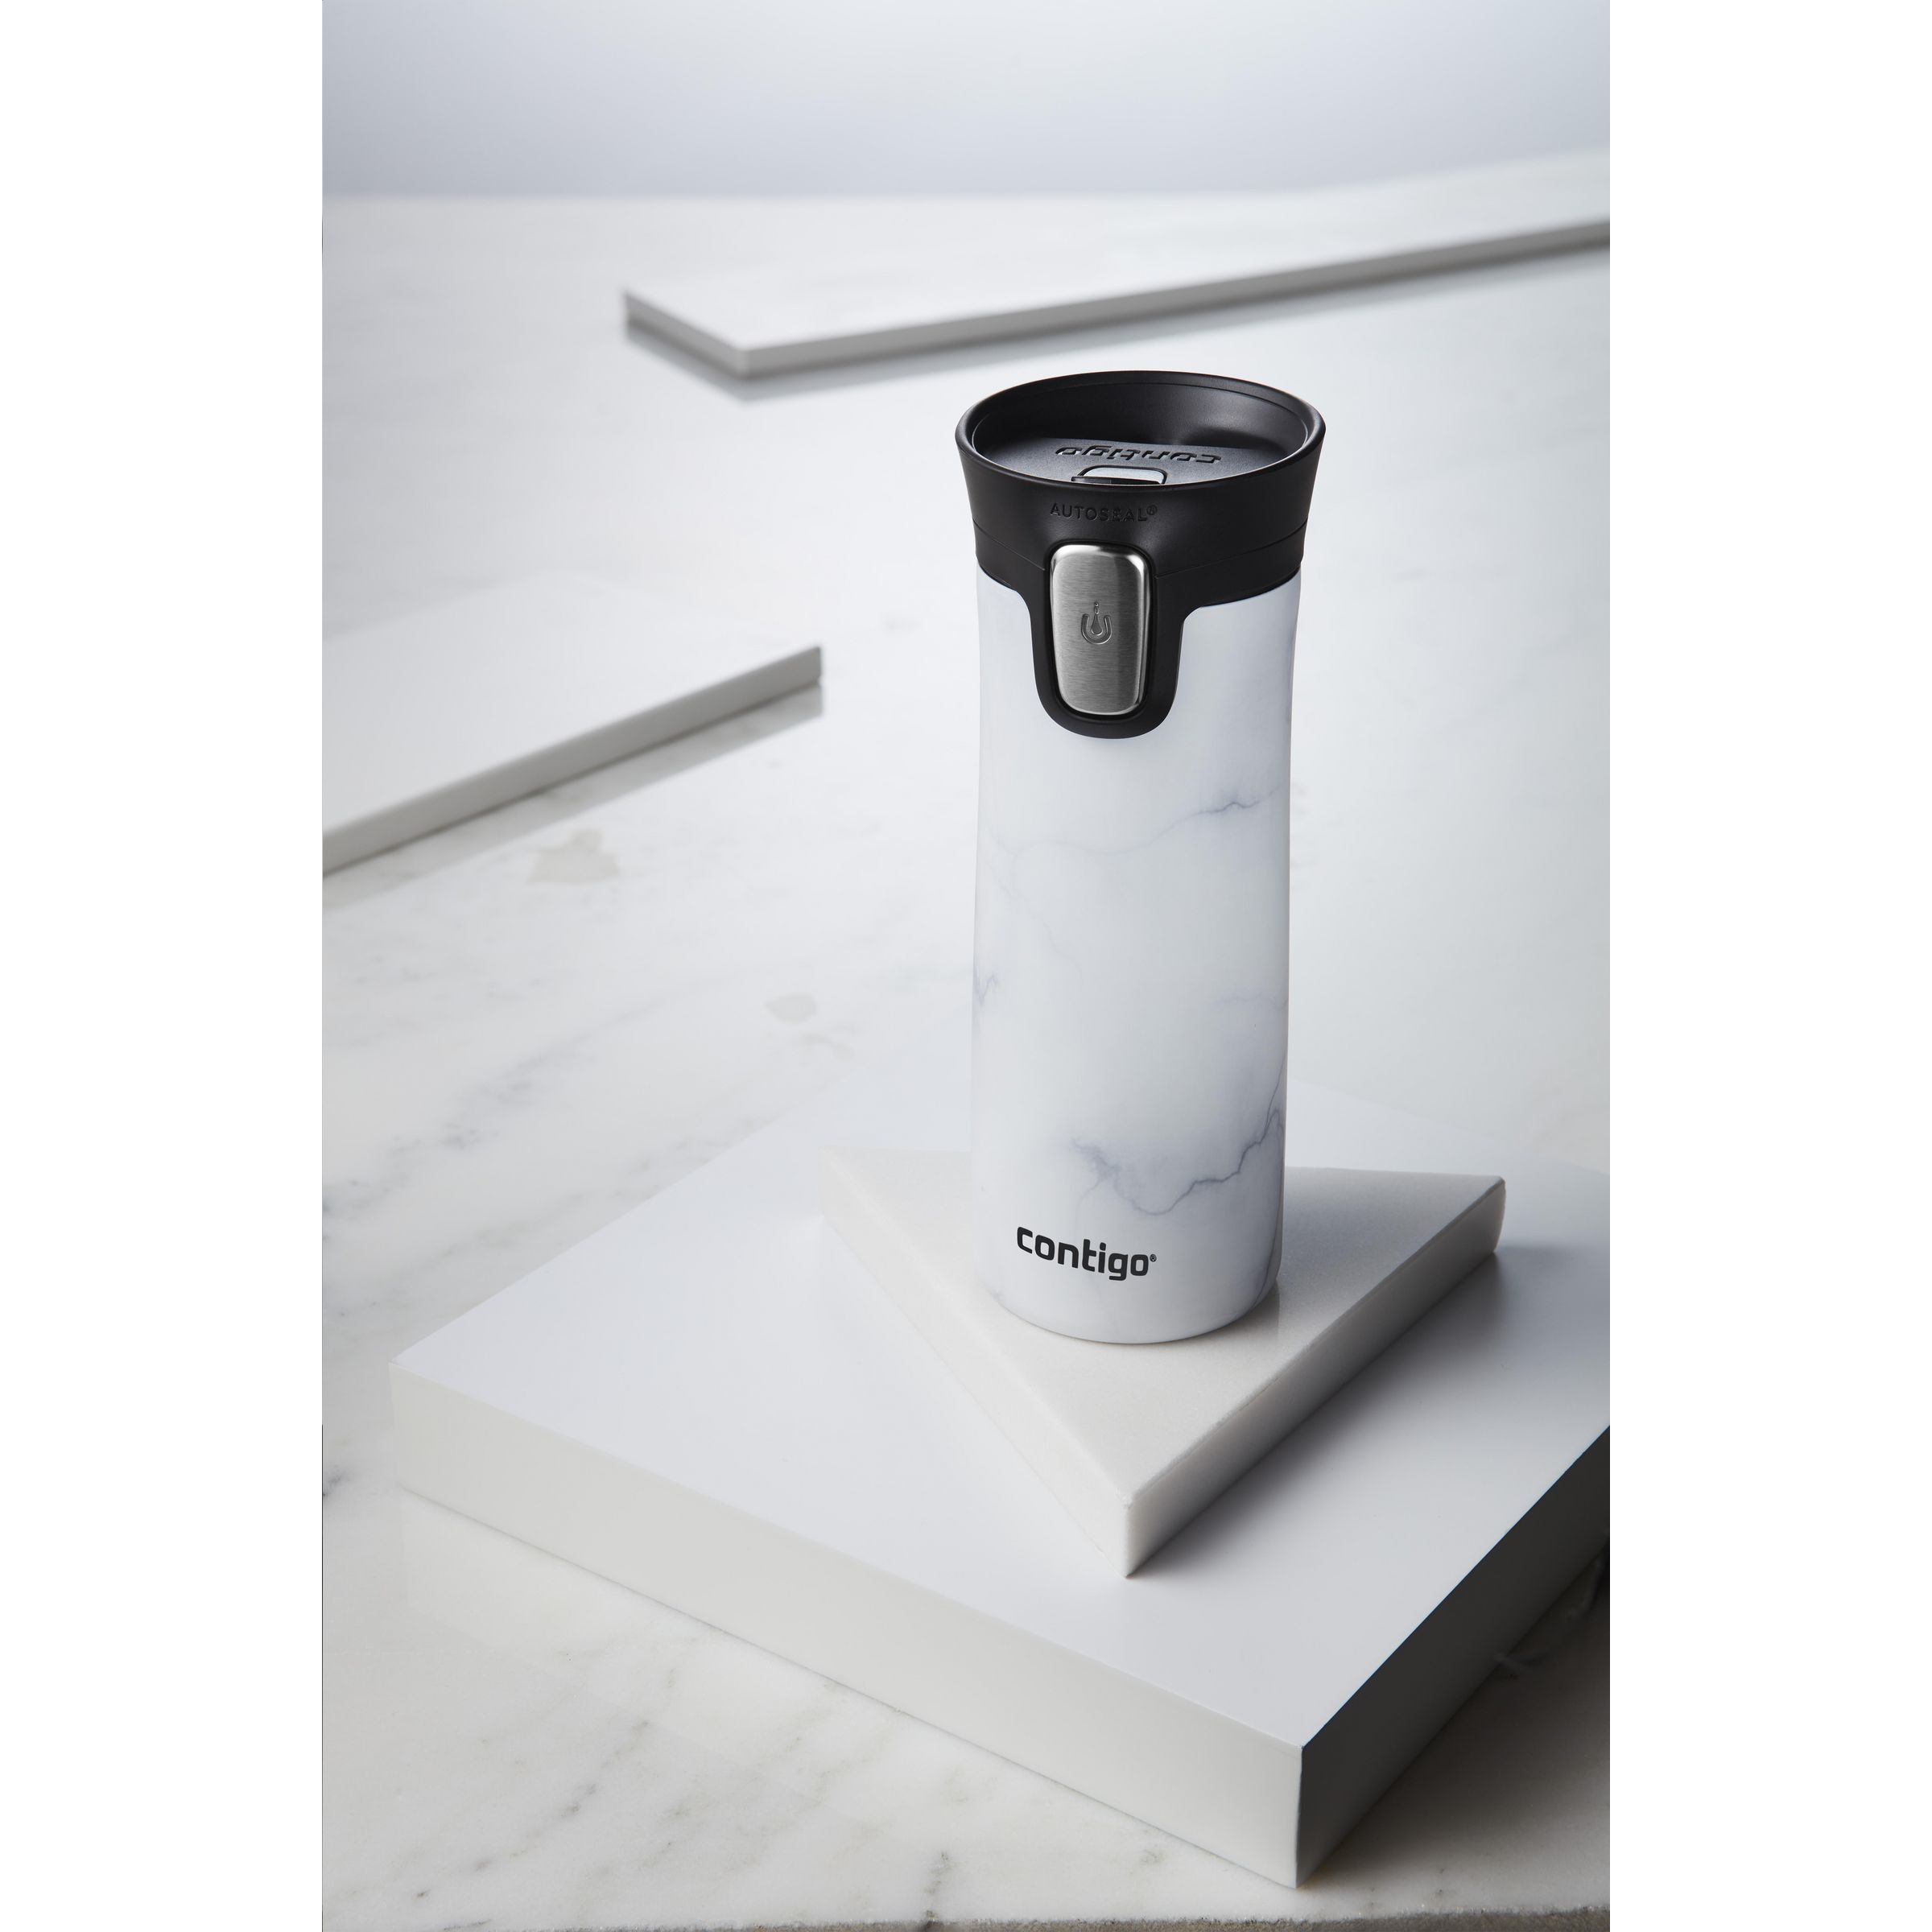 Contigo® Pinnacle Couture thermos